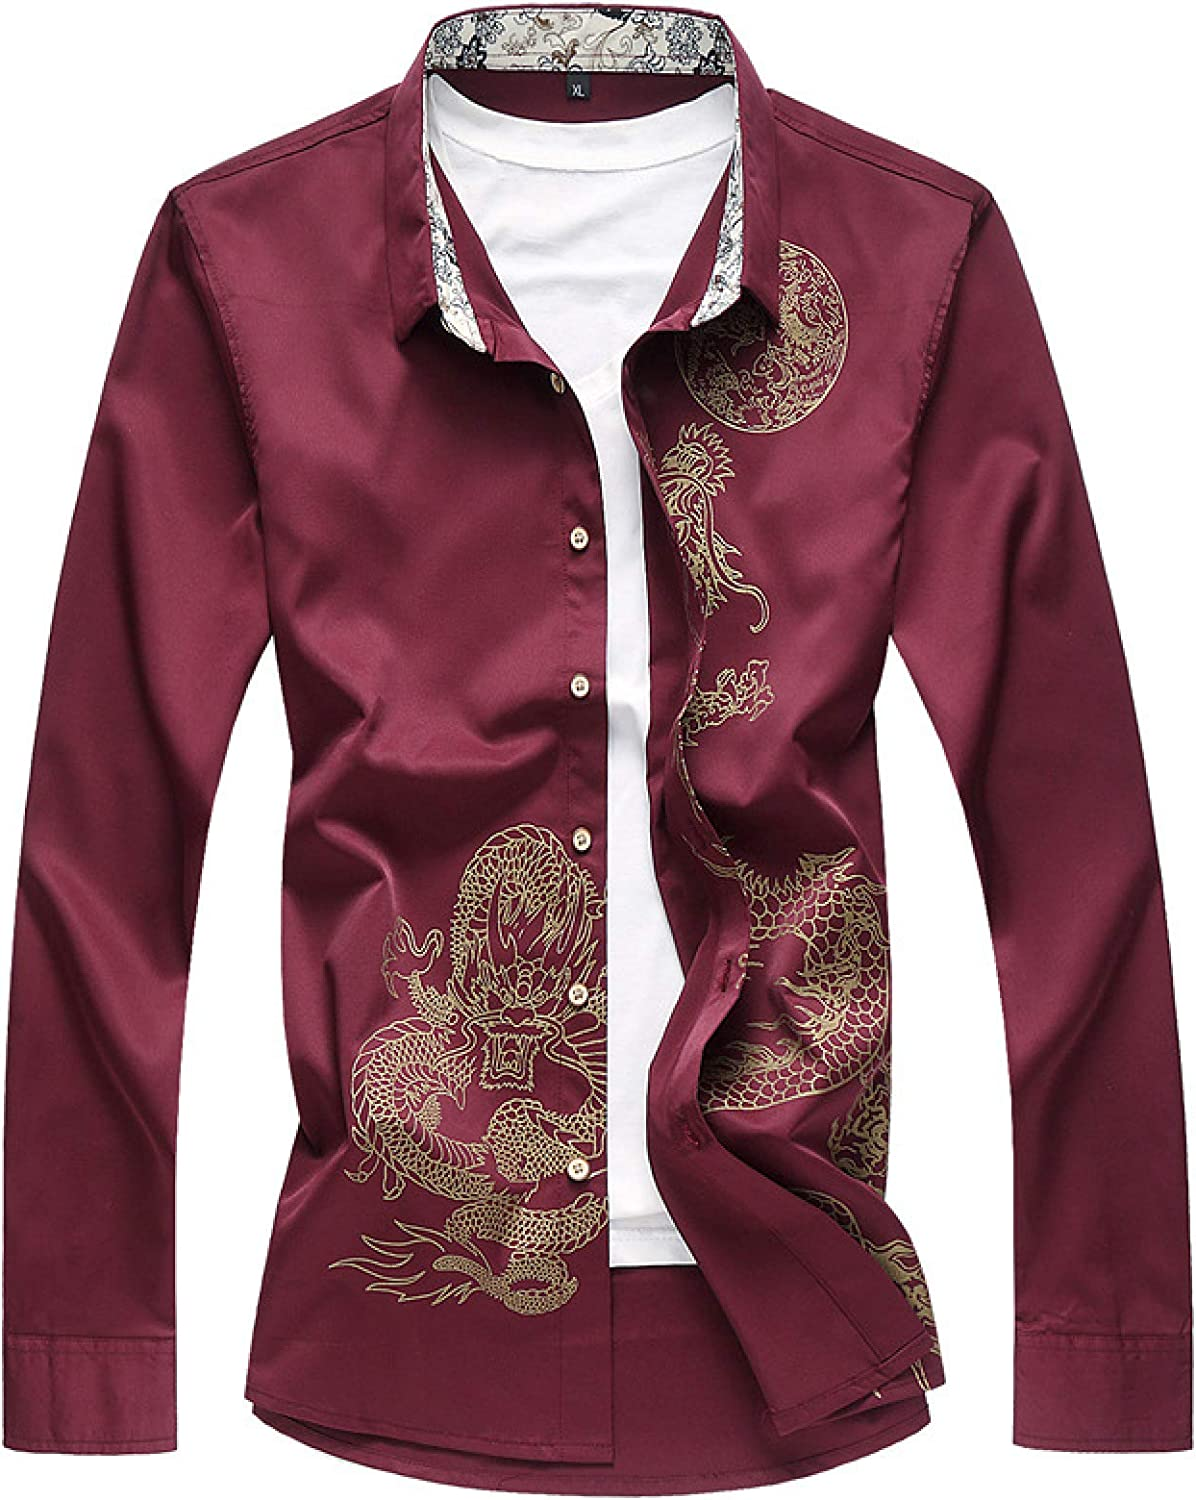 Men's Long-Sleeved Shirt Jacksonville Mall Personalized Streetwe Slim Printing Fit quality assurance